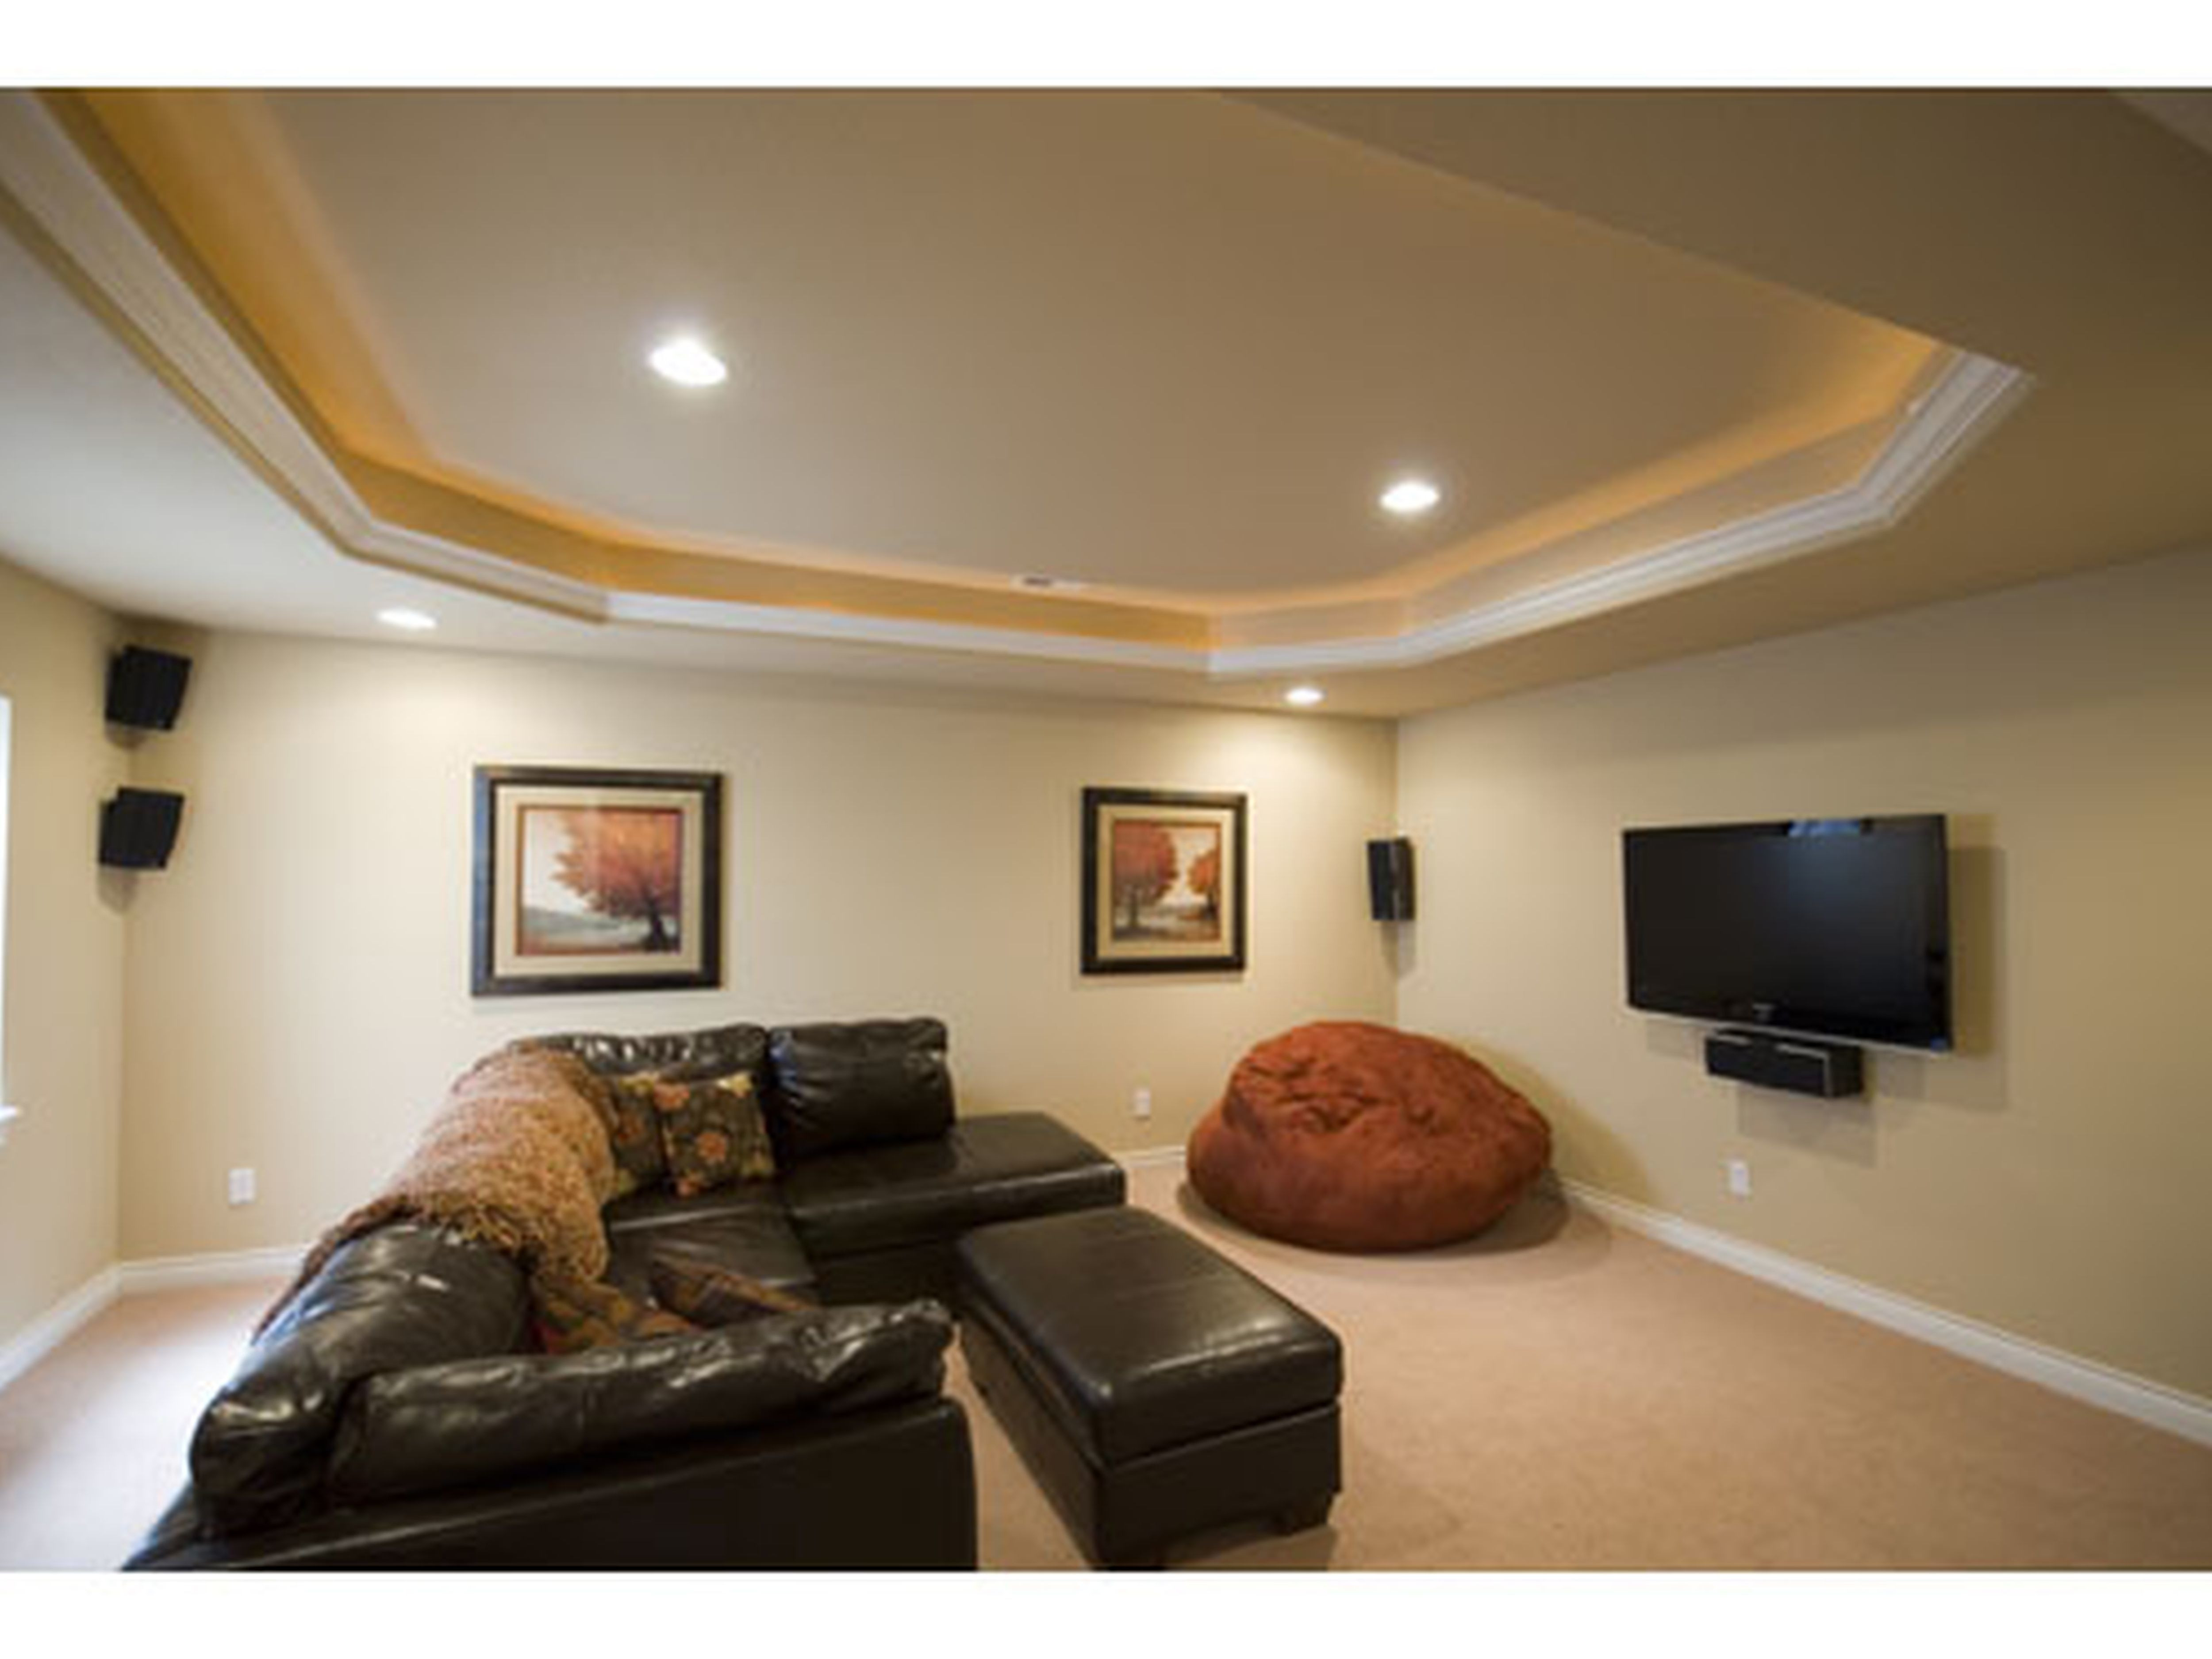 Best ideas about Pinterest Basement Ideas . Save or Pin Great Small Basement Ideas A Bud with About Now.